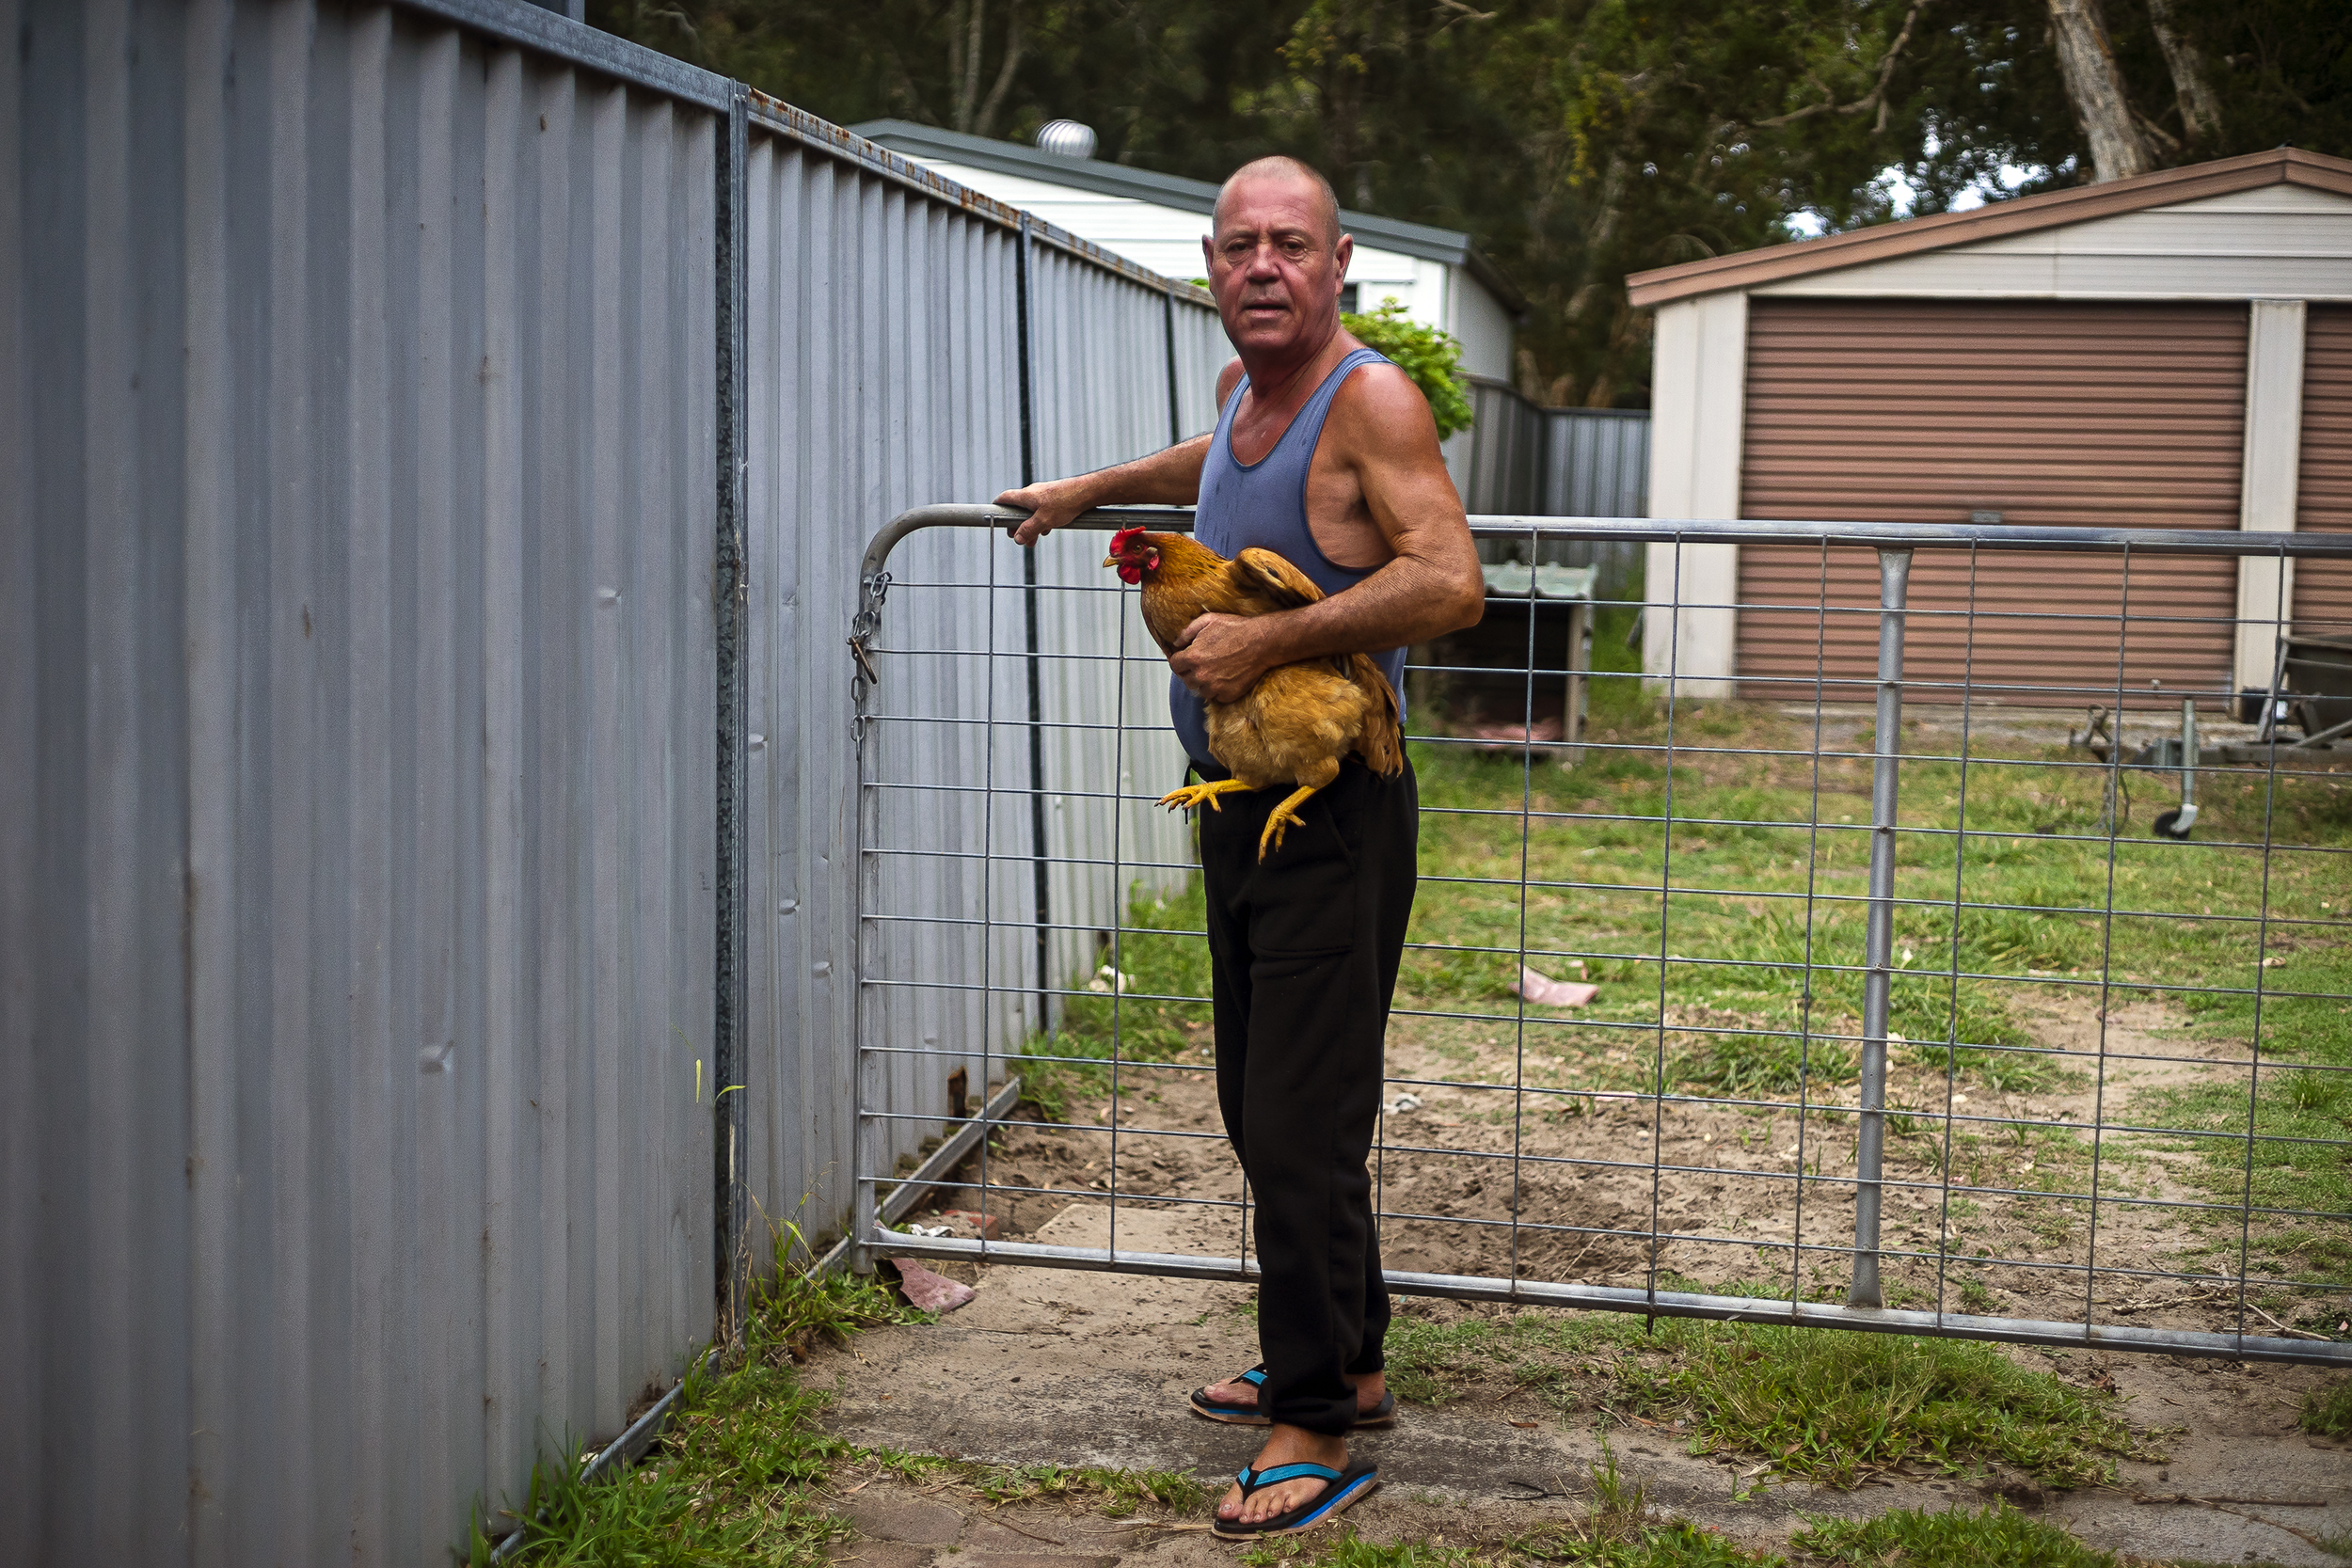 006_didi-s_gilson_australian_street_photography_candid_chicken_chook_gate_thongs_rural_portstephens_2018.jpg